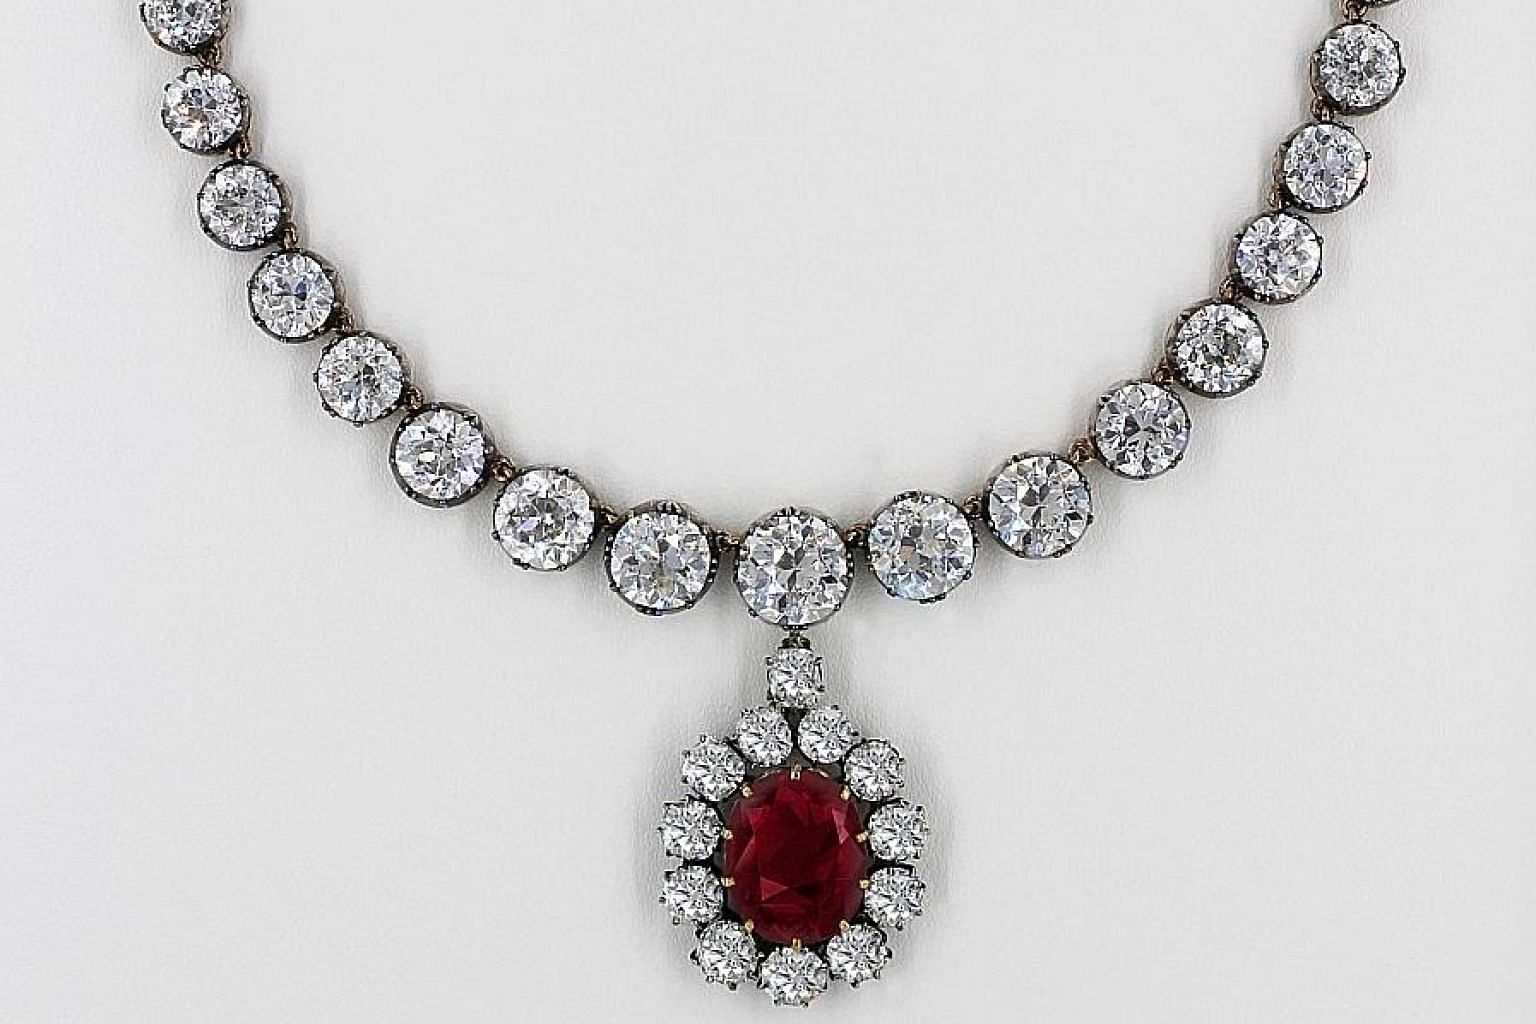 The star of the show is a pigeon blood oval ruby and diamond necklace by Malaysian jeweller DeGem. The ruby, weighing over 15 carats, commands a value of not less than $13.6 million.